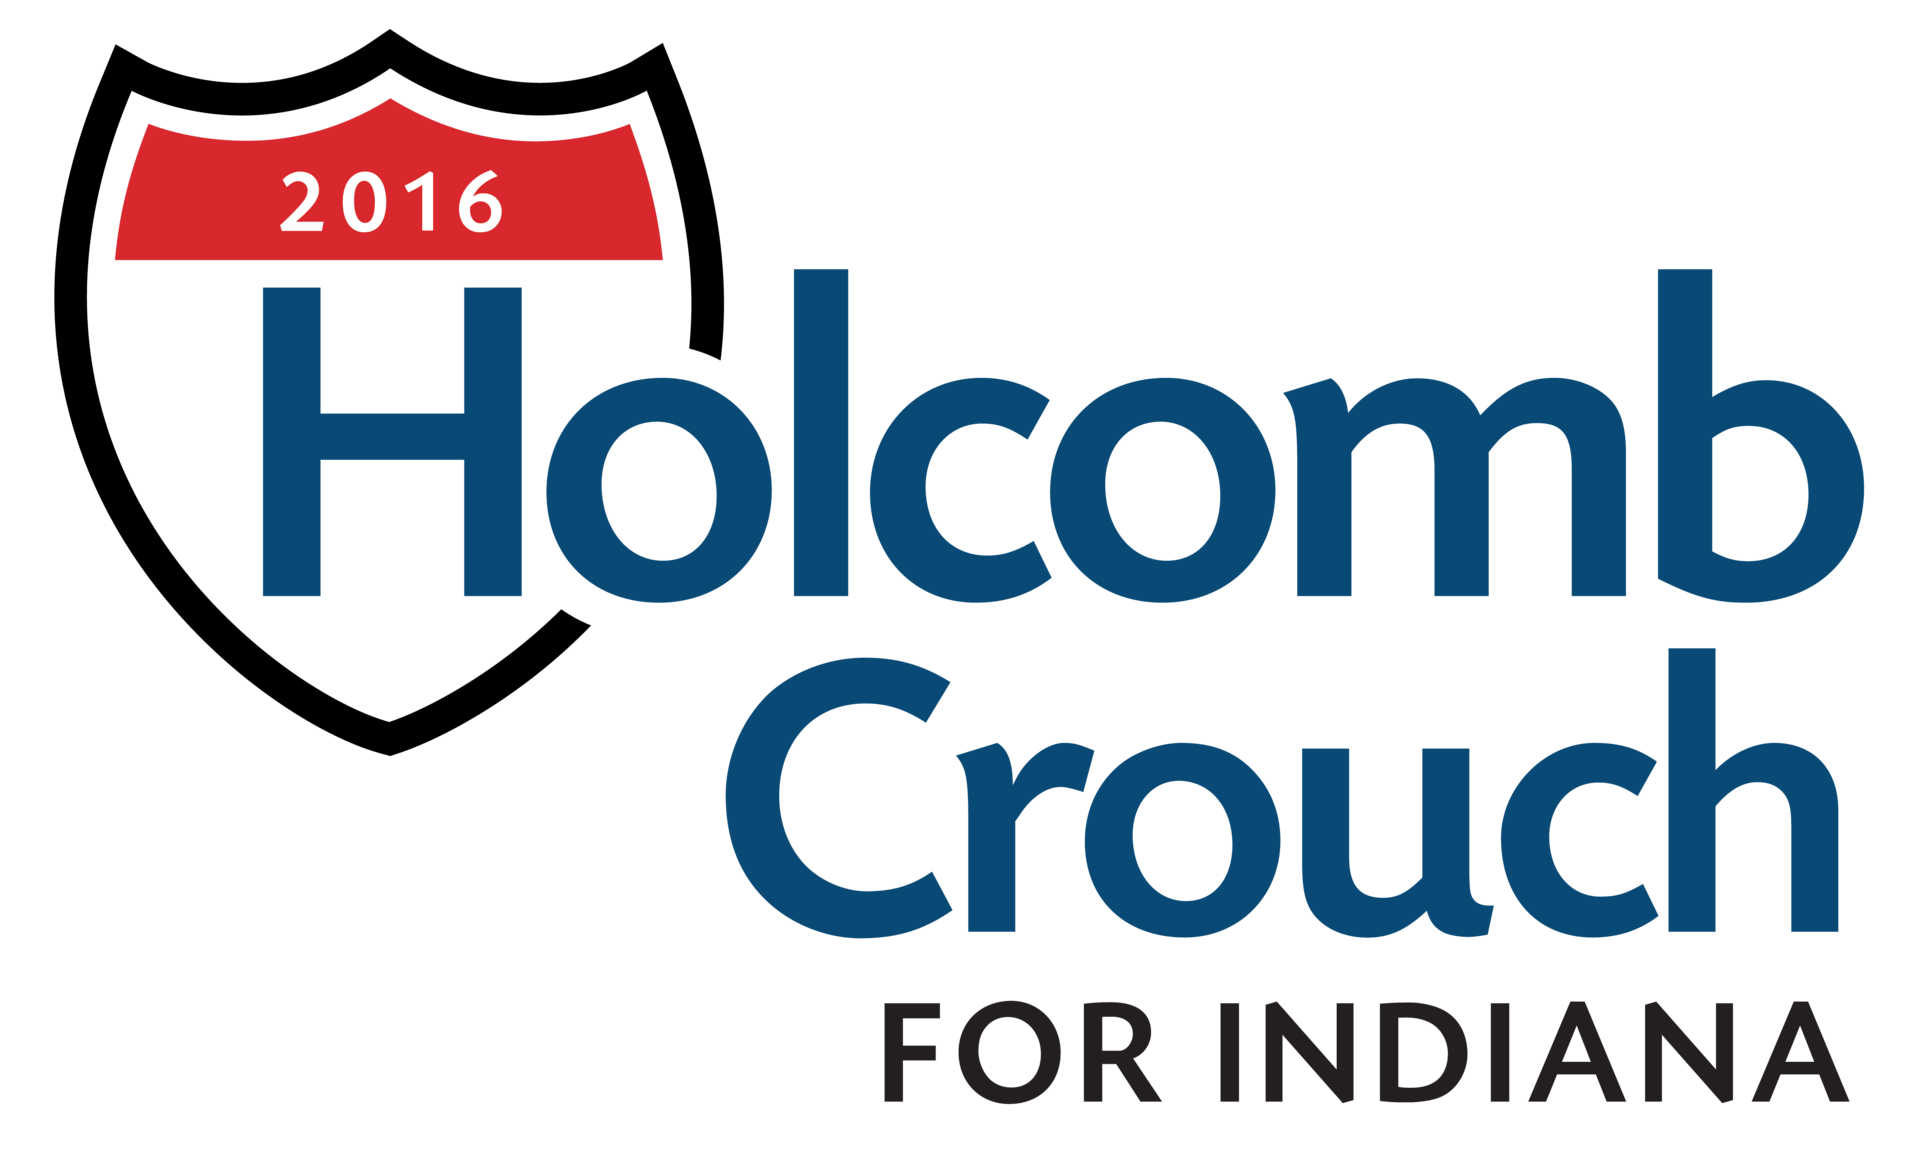 Holcomb crouch logo 07